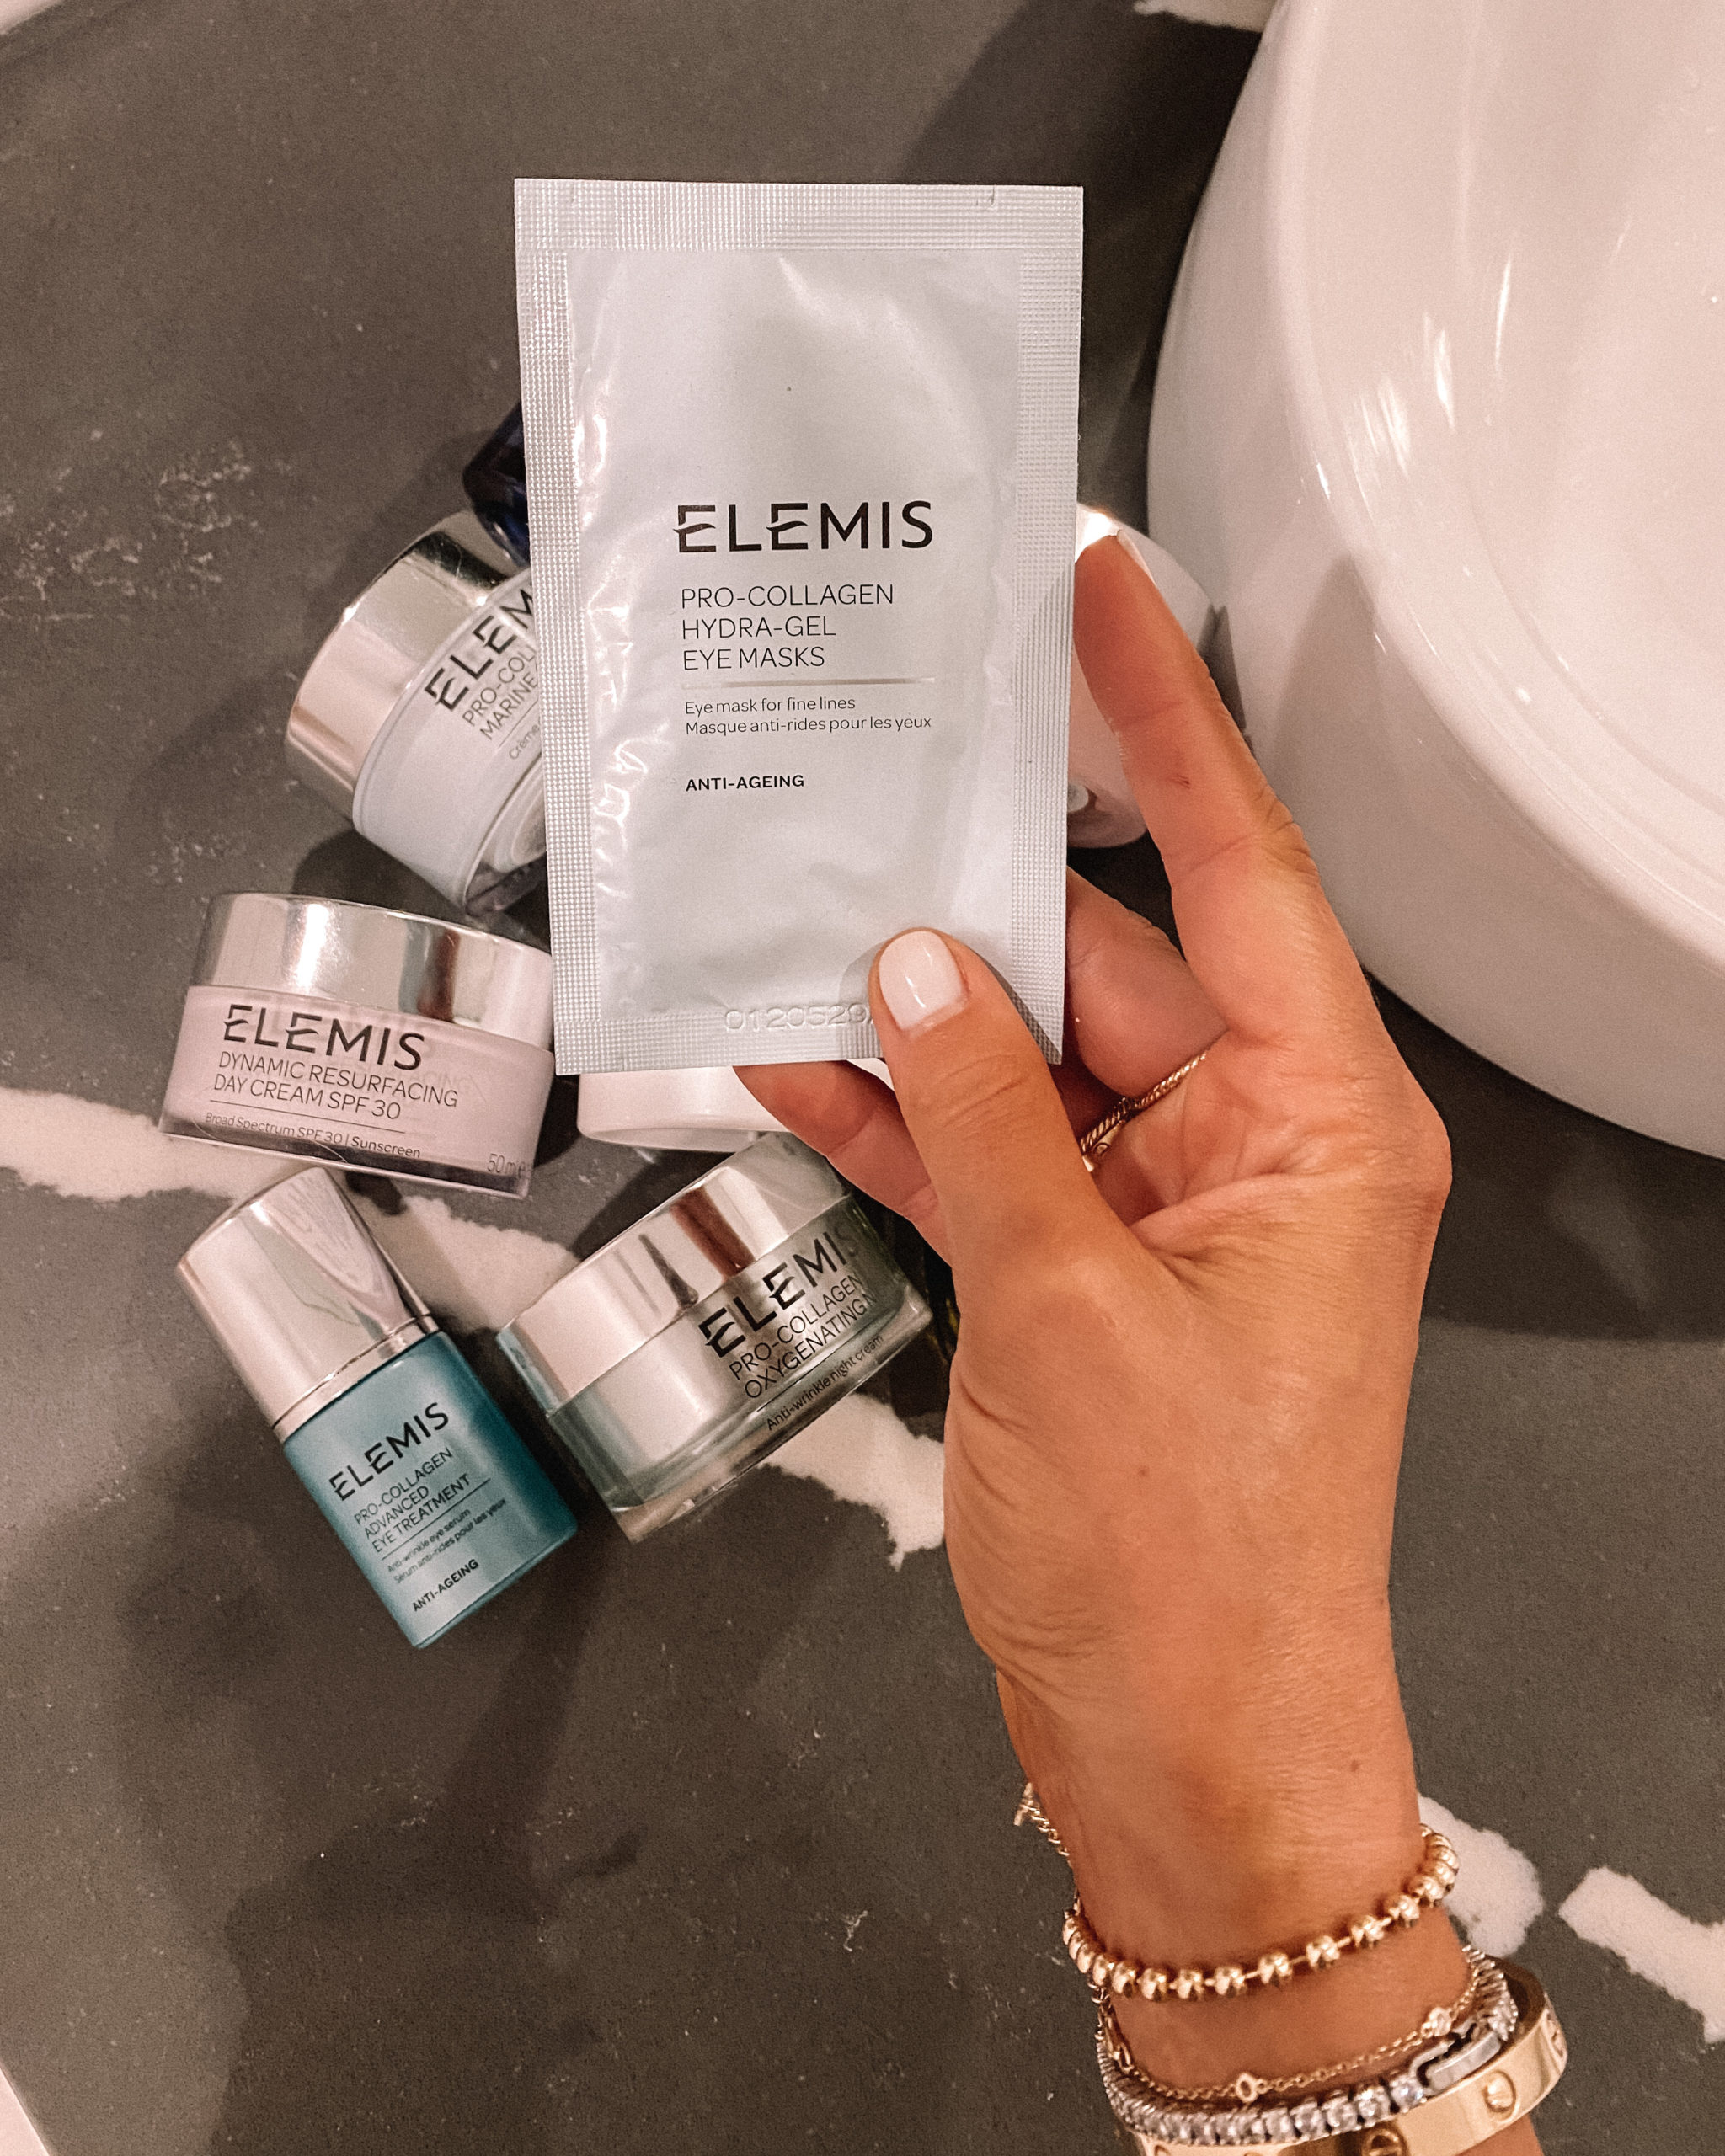 Fashion Jackson Elemis Pro-Collagen Hydra-Gel Eye Masks